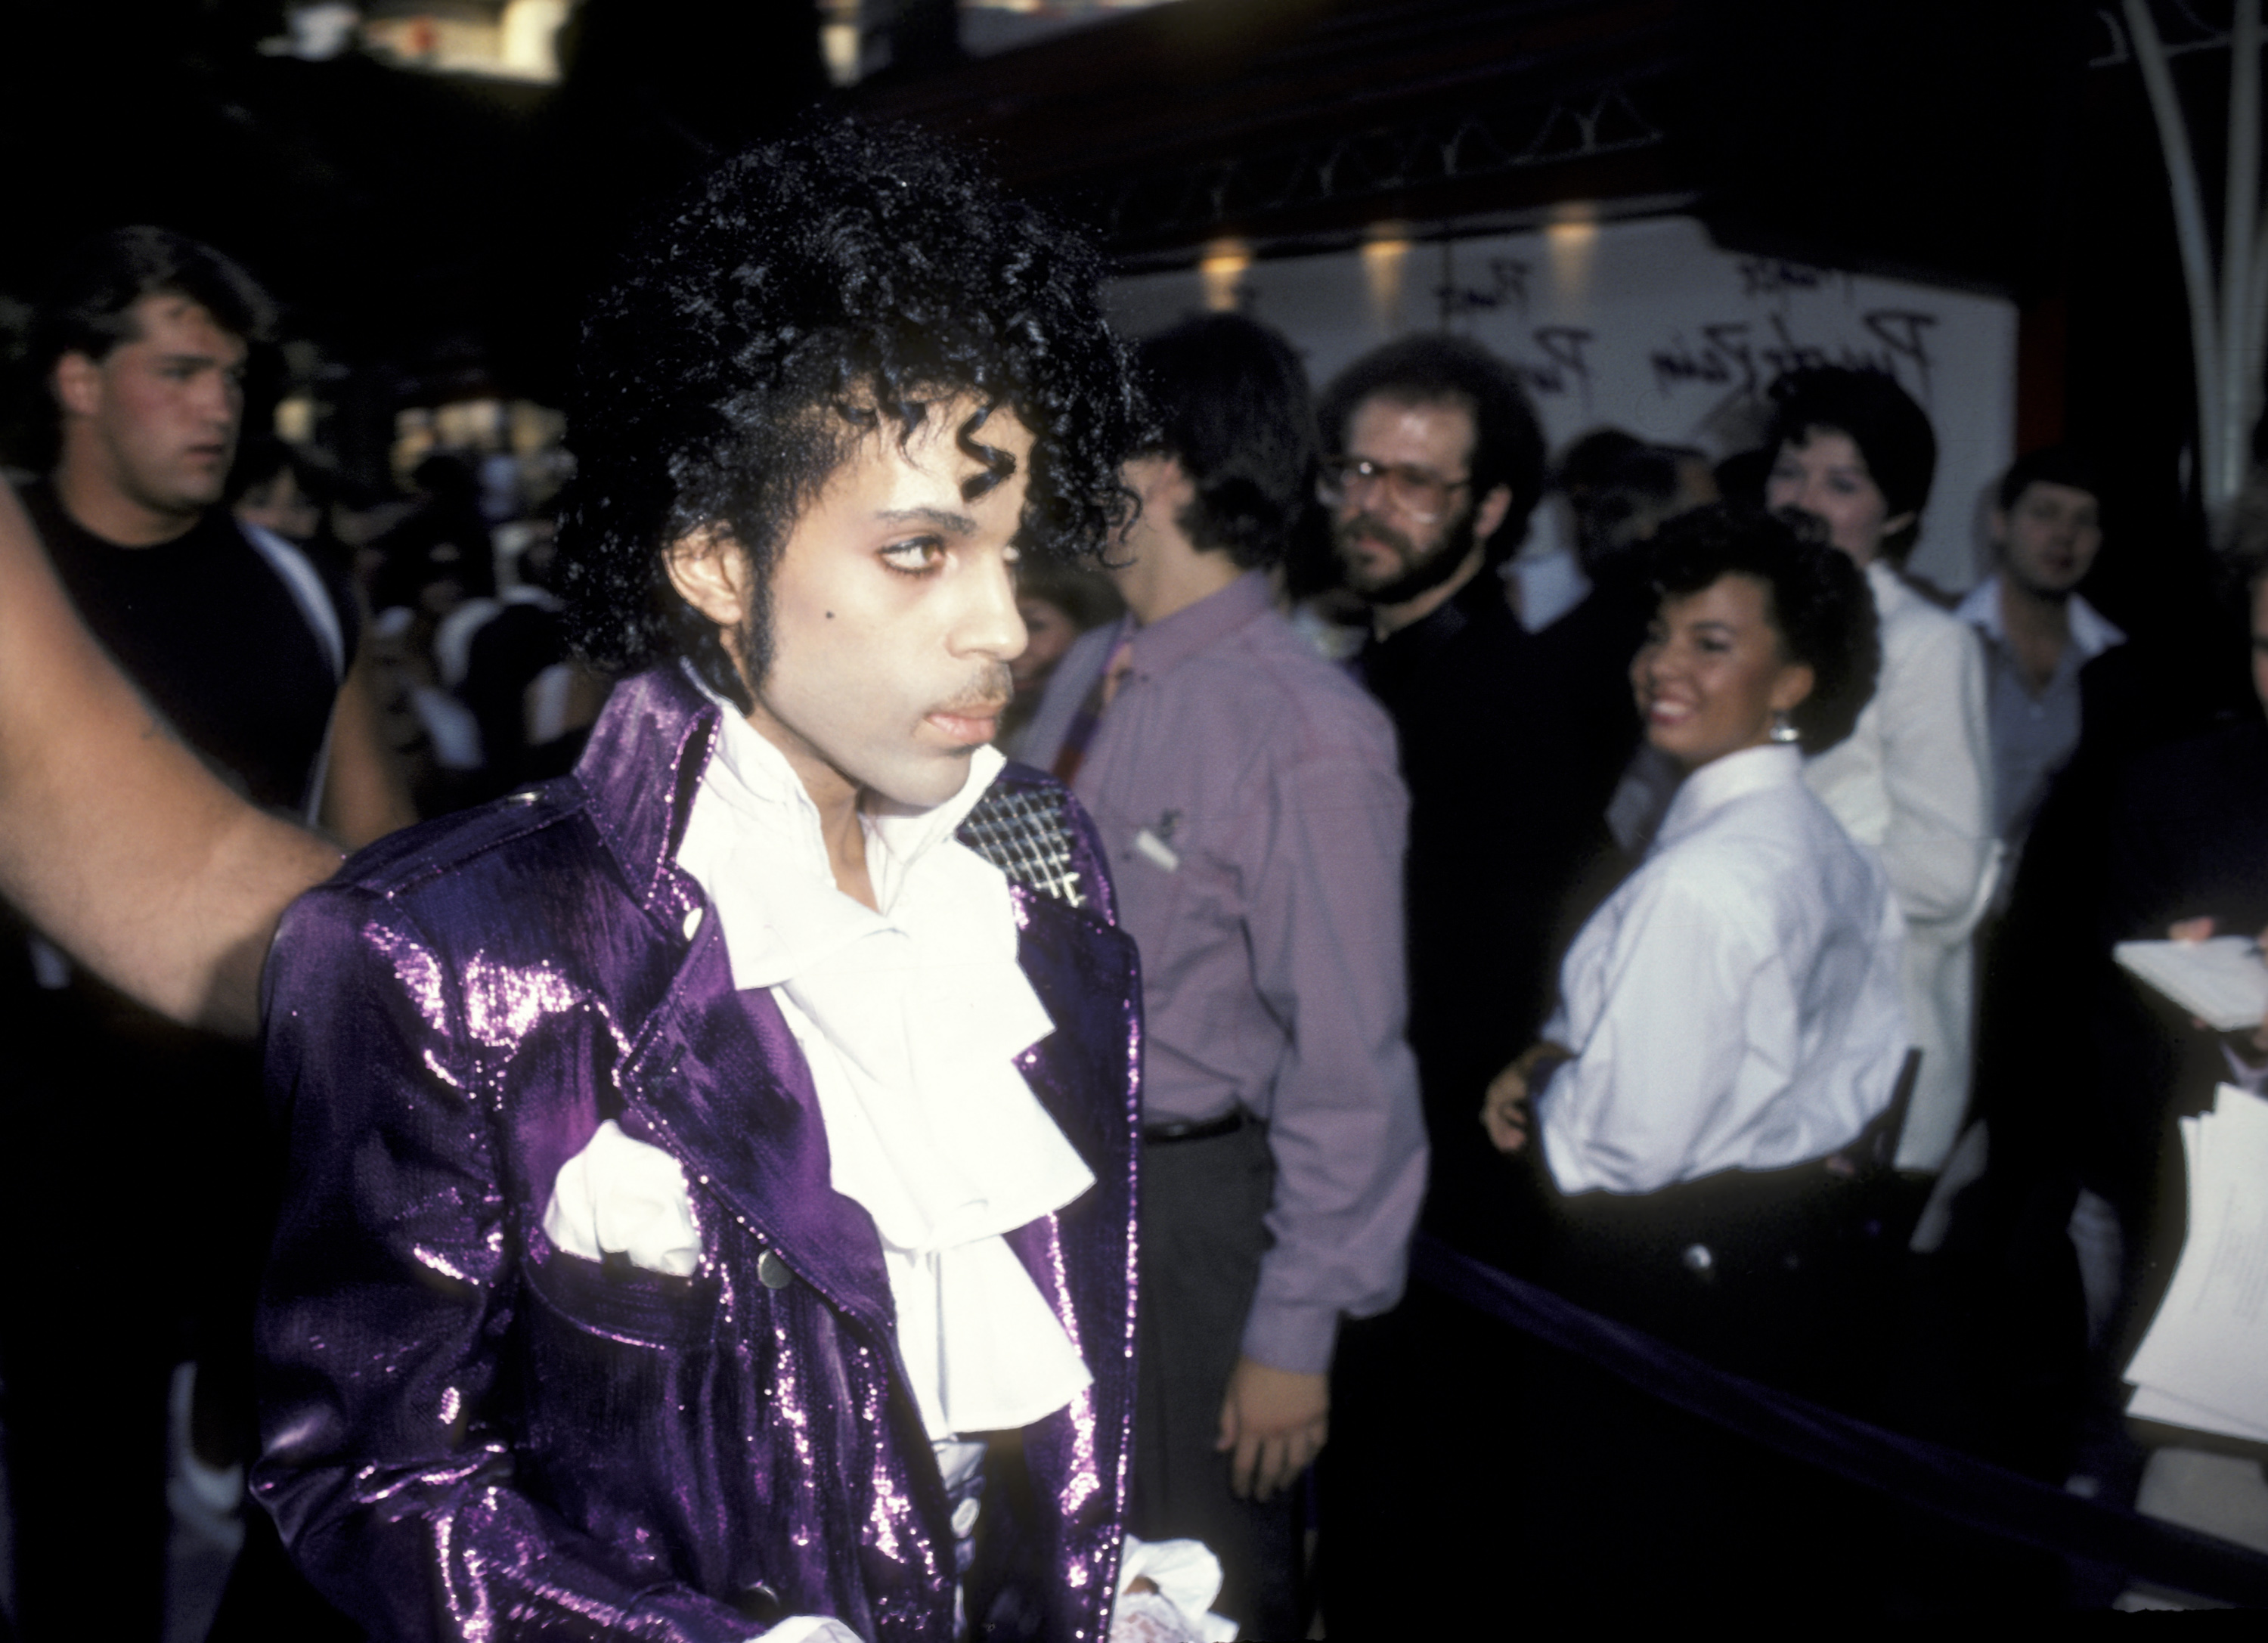 Prince attends the premiere of <i>Purple Rain</i> on July 26, 1984 in Hollywood, Calif.